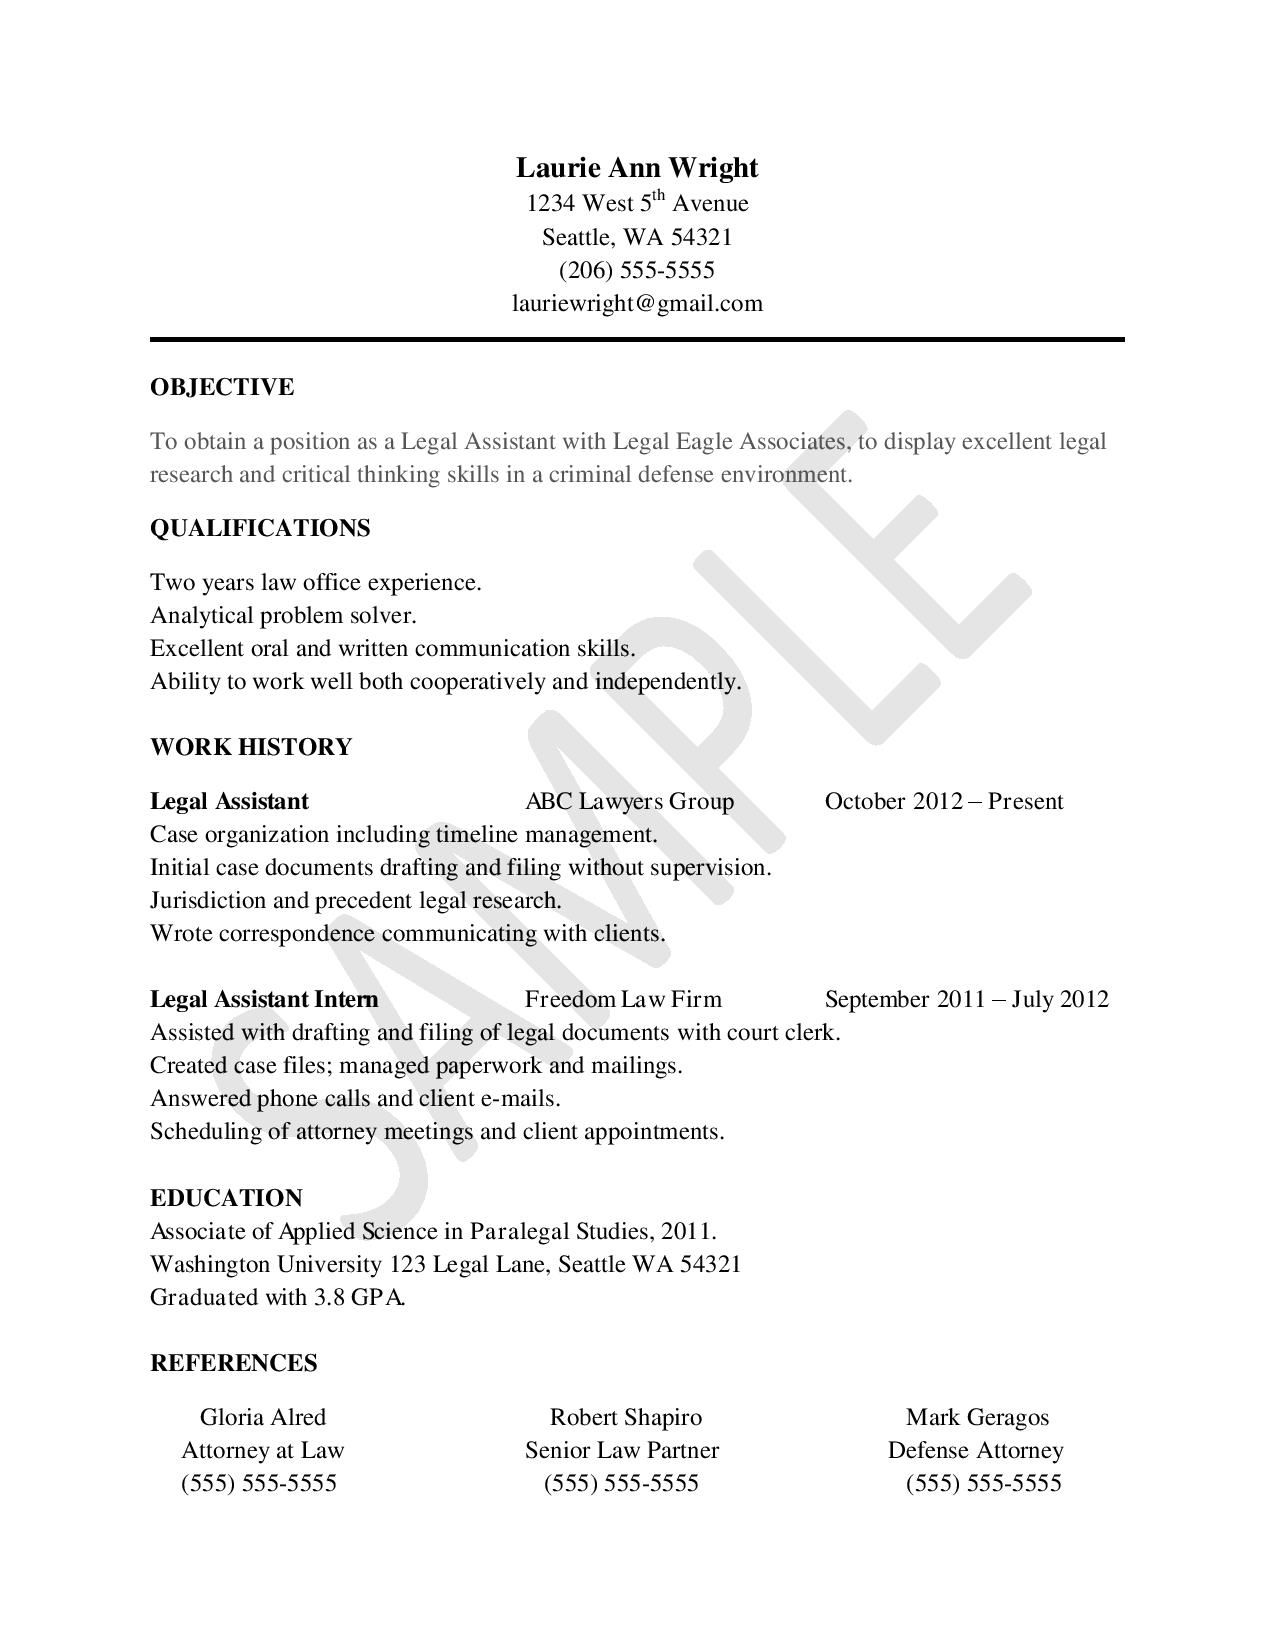 Attorney Cover Letter Sample Resume For Legal Assistants  Legalassistant